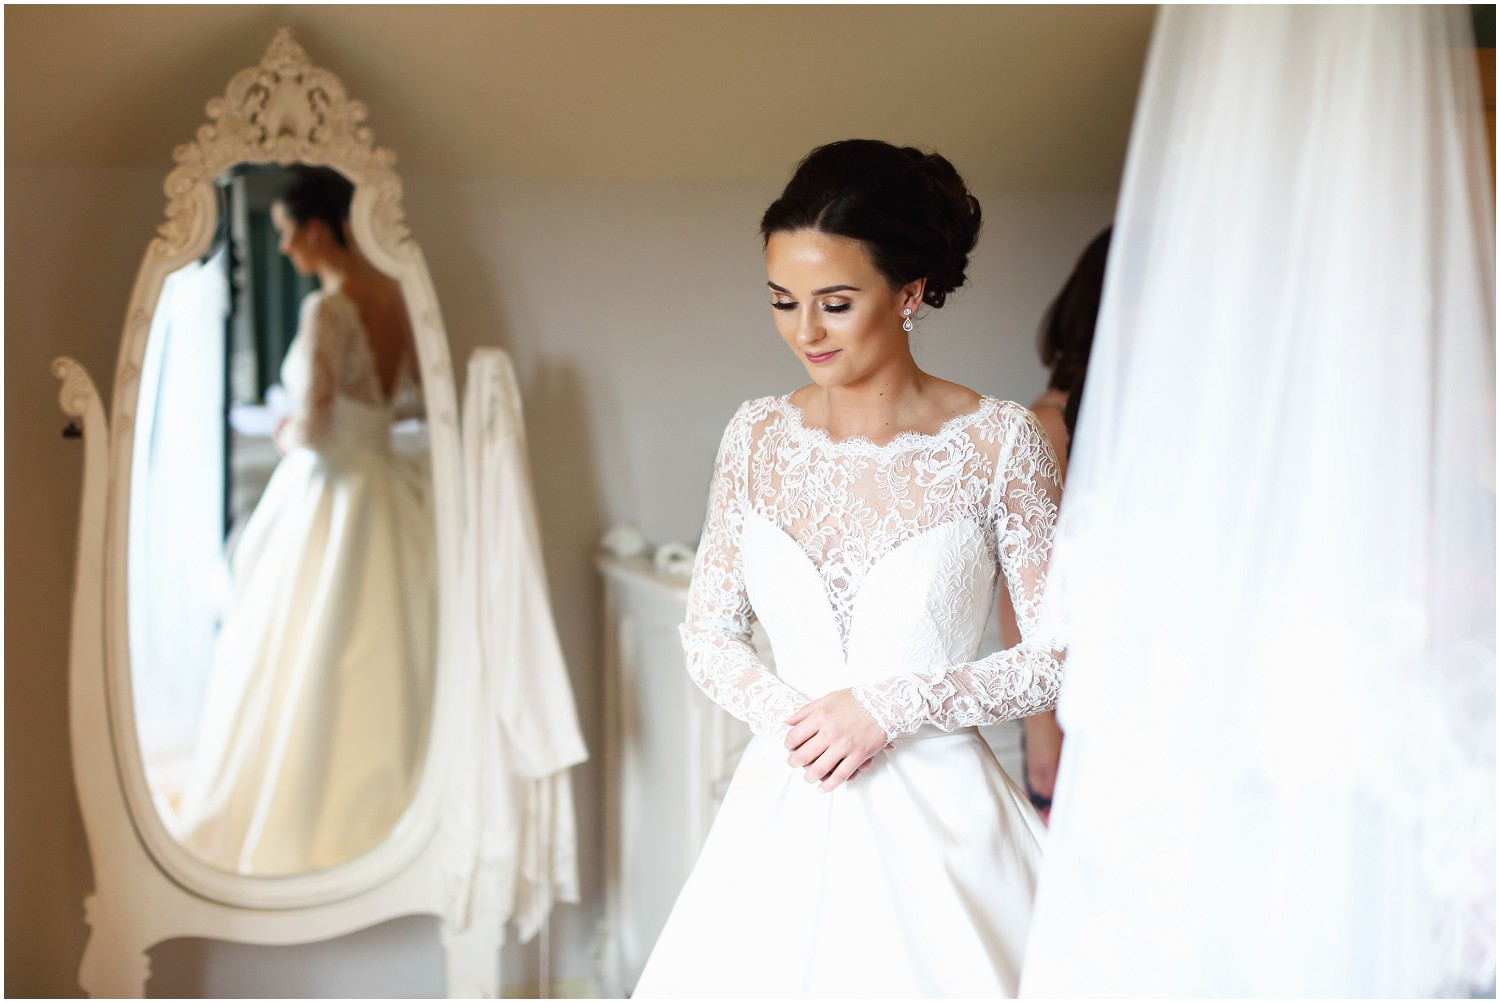 brides refection getting dressed Merrydale manor